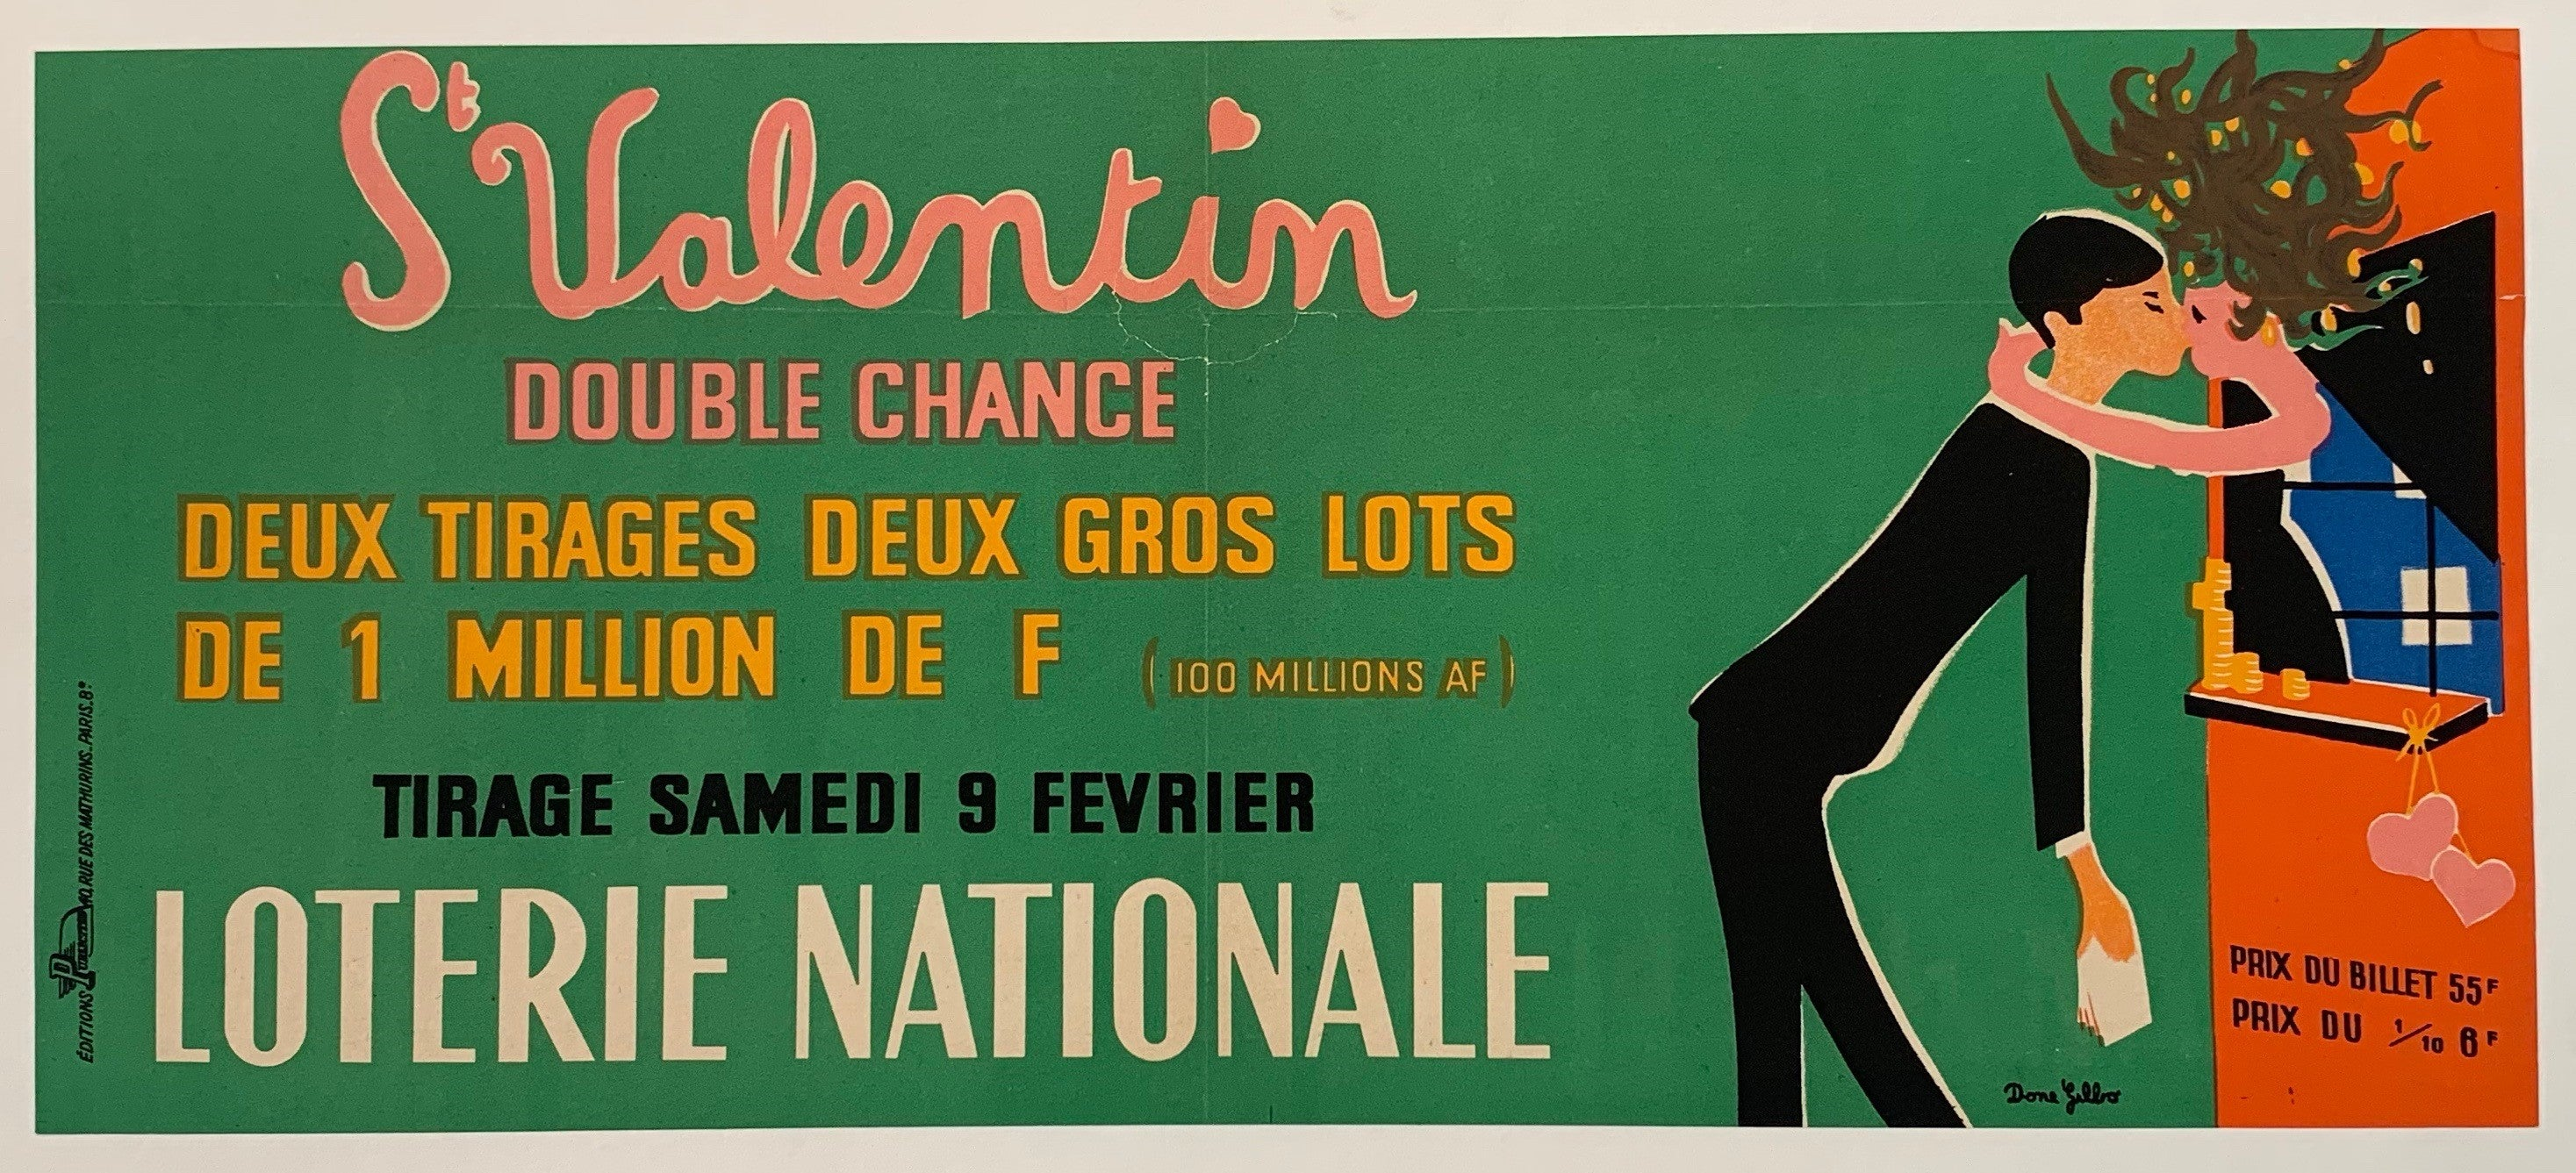 Loterie Nationale - Double Chance